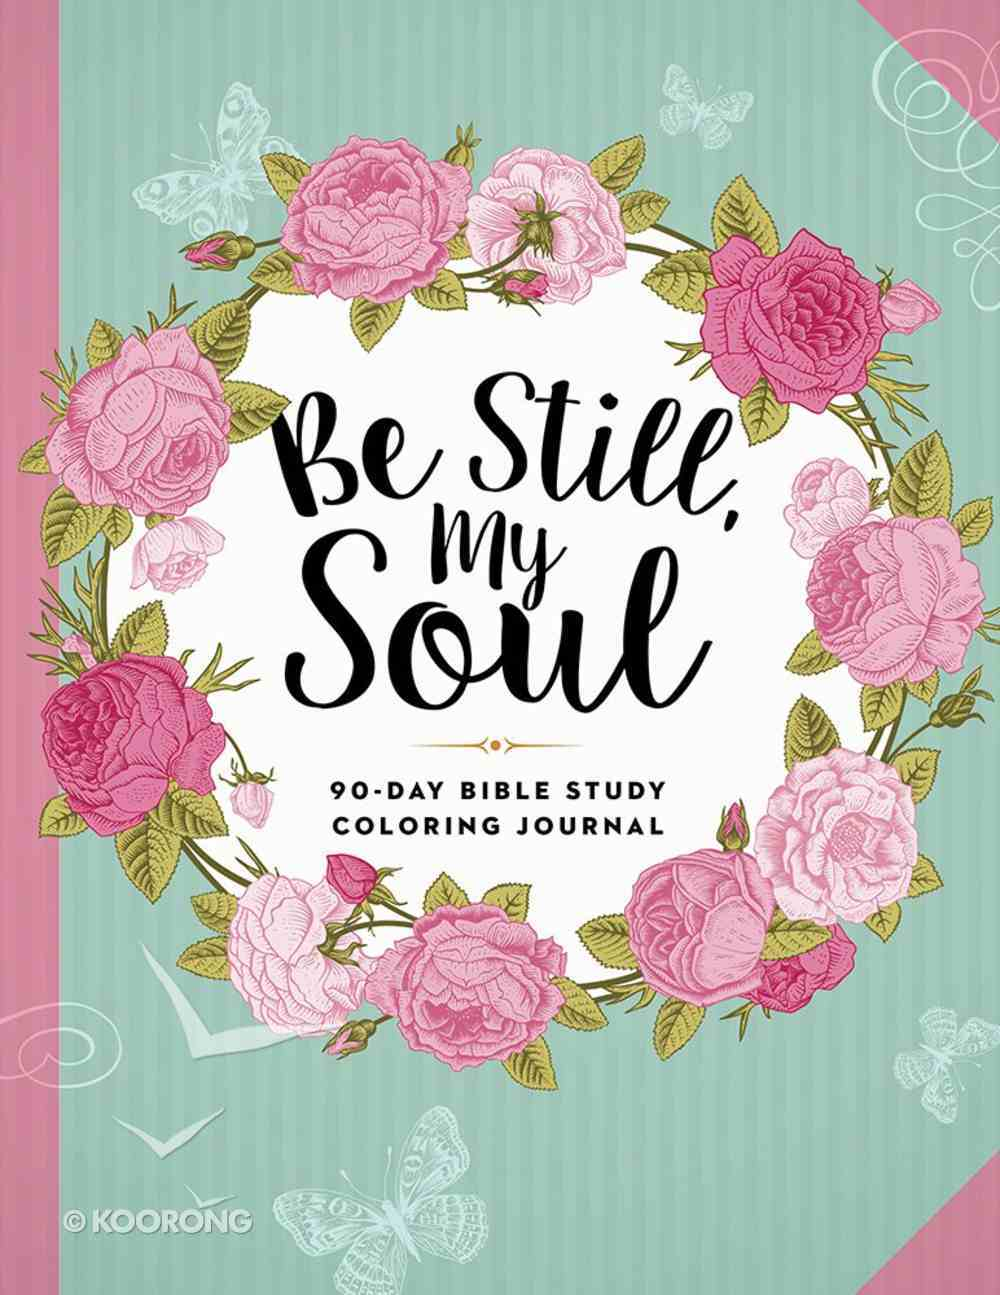 Be Still, My Soul - 90-Day Bible Study Coloring Journal (Adult Coloring Books Series) Paperback